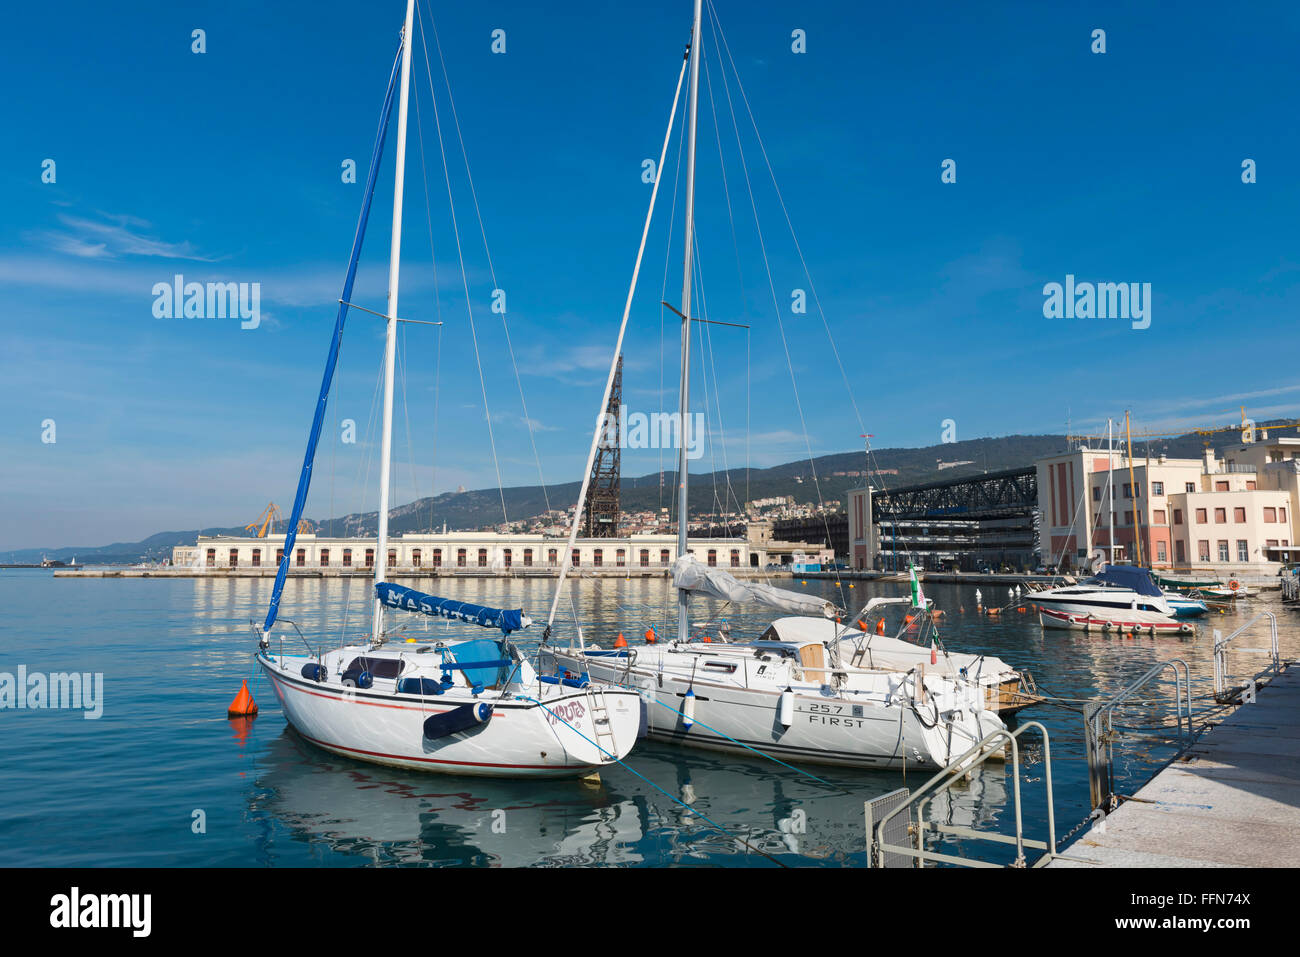 The waterfront, Trieste, Italy, Europe - Stock Image